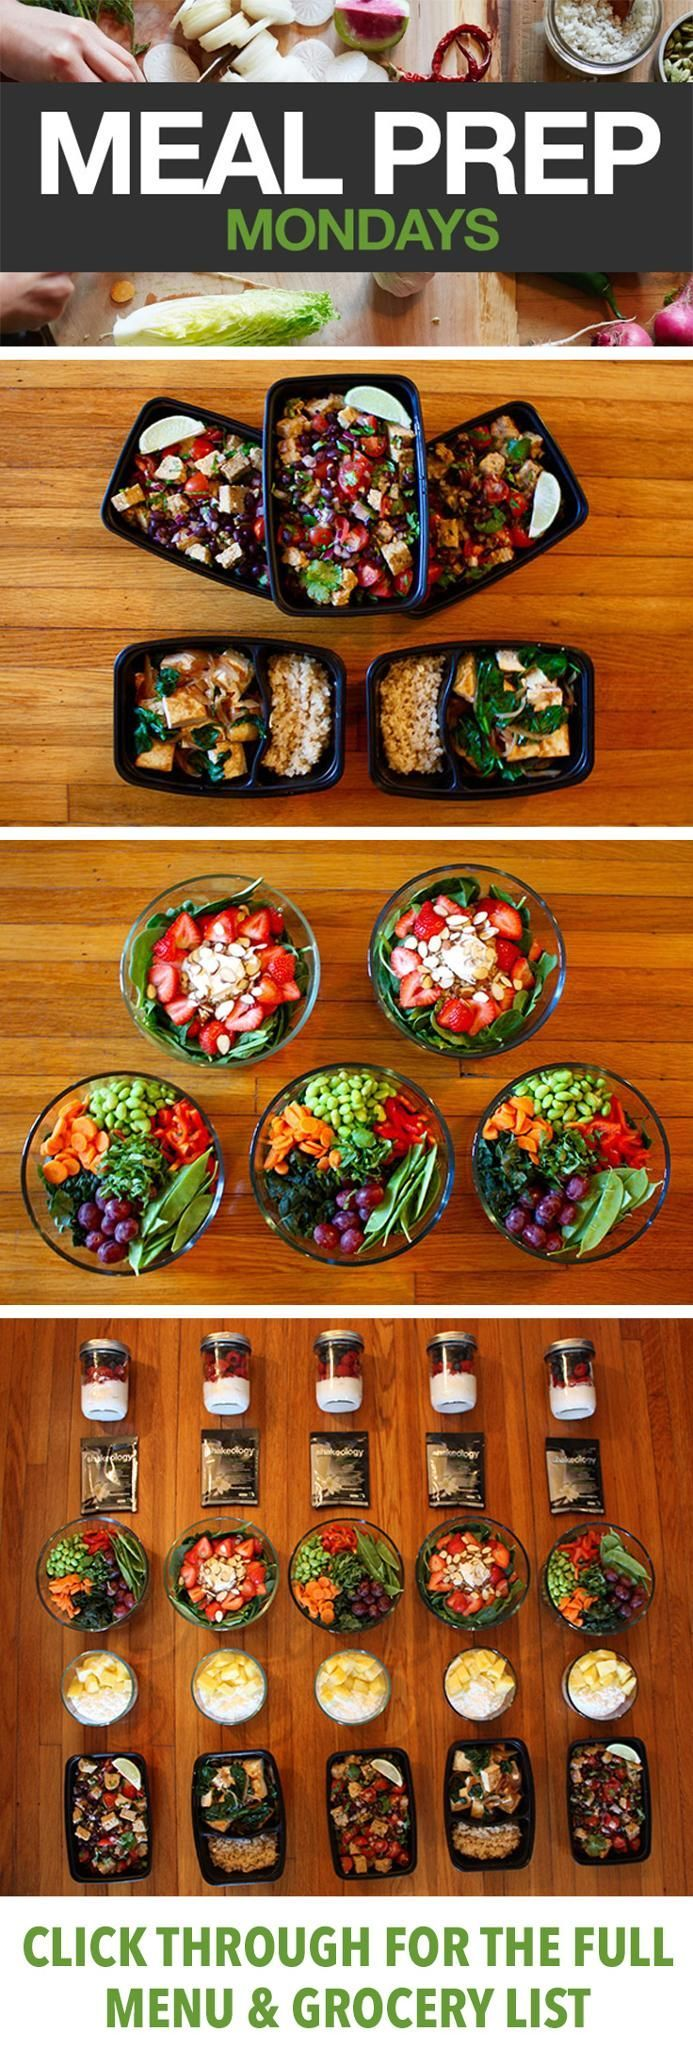 Meal Prep Vegetarian Meal Prep For 21 Day Fix - If you are vegetarian, or ever considered switching to a vegetarian diet, this 21 Day Fix-inspired meal prep menu is a great place to start. Click through for the full list of breakfasts, lunches, dinners, and snacks! // beachbody blog